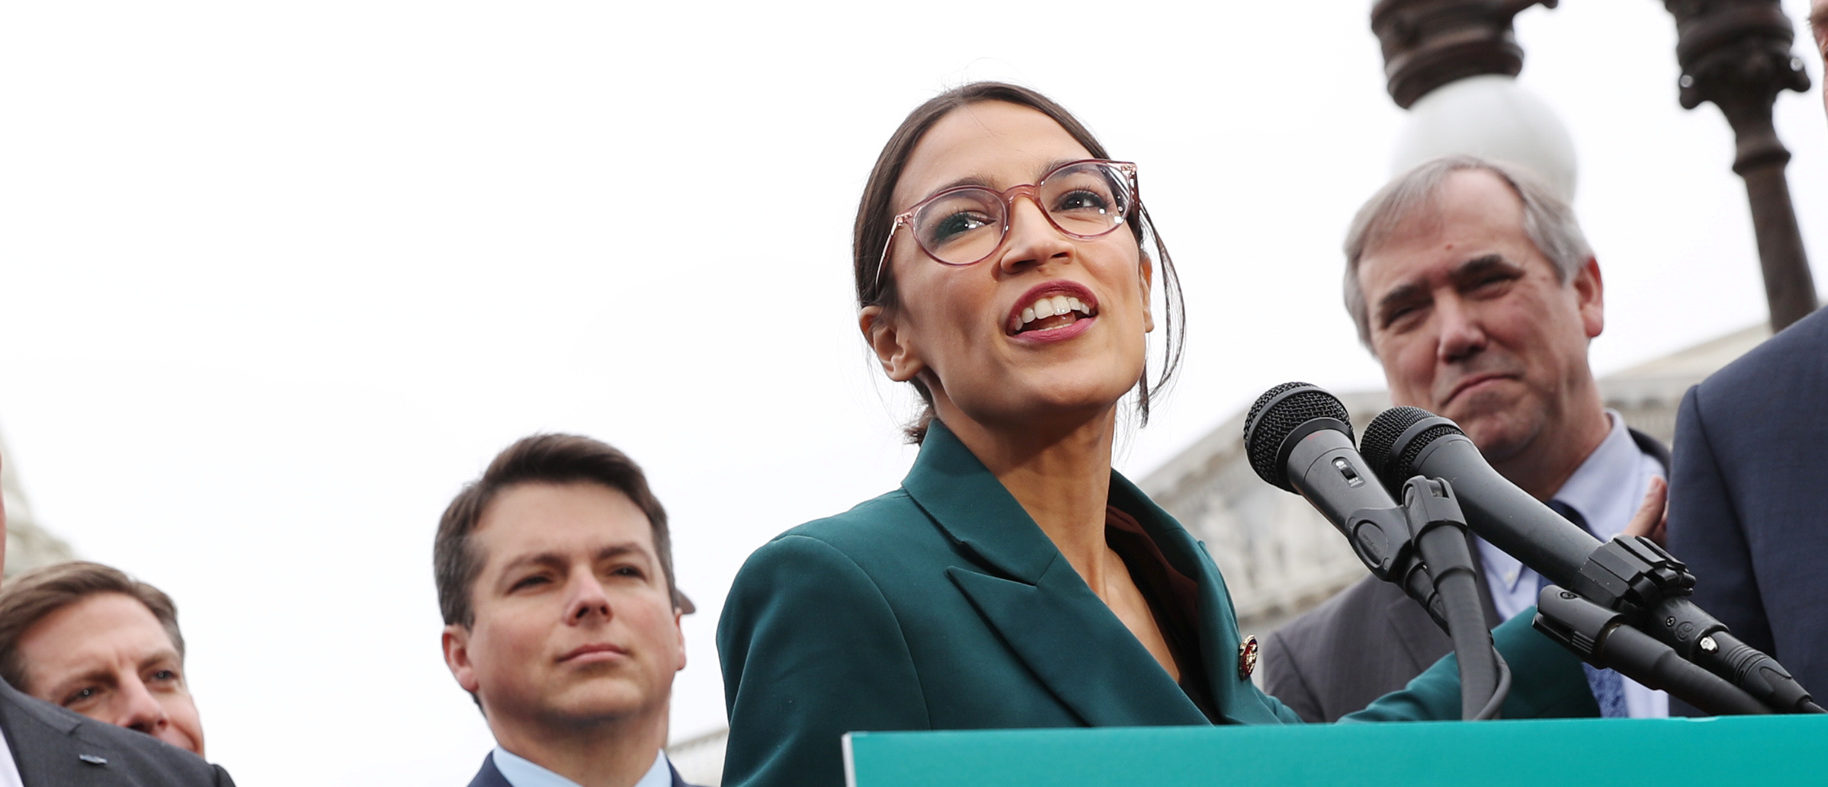 """U.S. Representative Alexandria Ocasio-Cortez (D-NY) and Senator Ed Markey (D-MA) hold a news conference for their proposed """"Green New Deal"""" to achieve net-zero greenhouse gas emissions in 10 years, at the U.S. Capitol in Washington, U.S. February 7, 2019. REUTERS/Jonathan Ernst."""